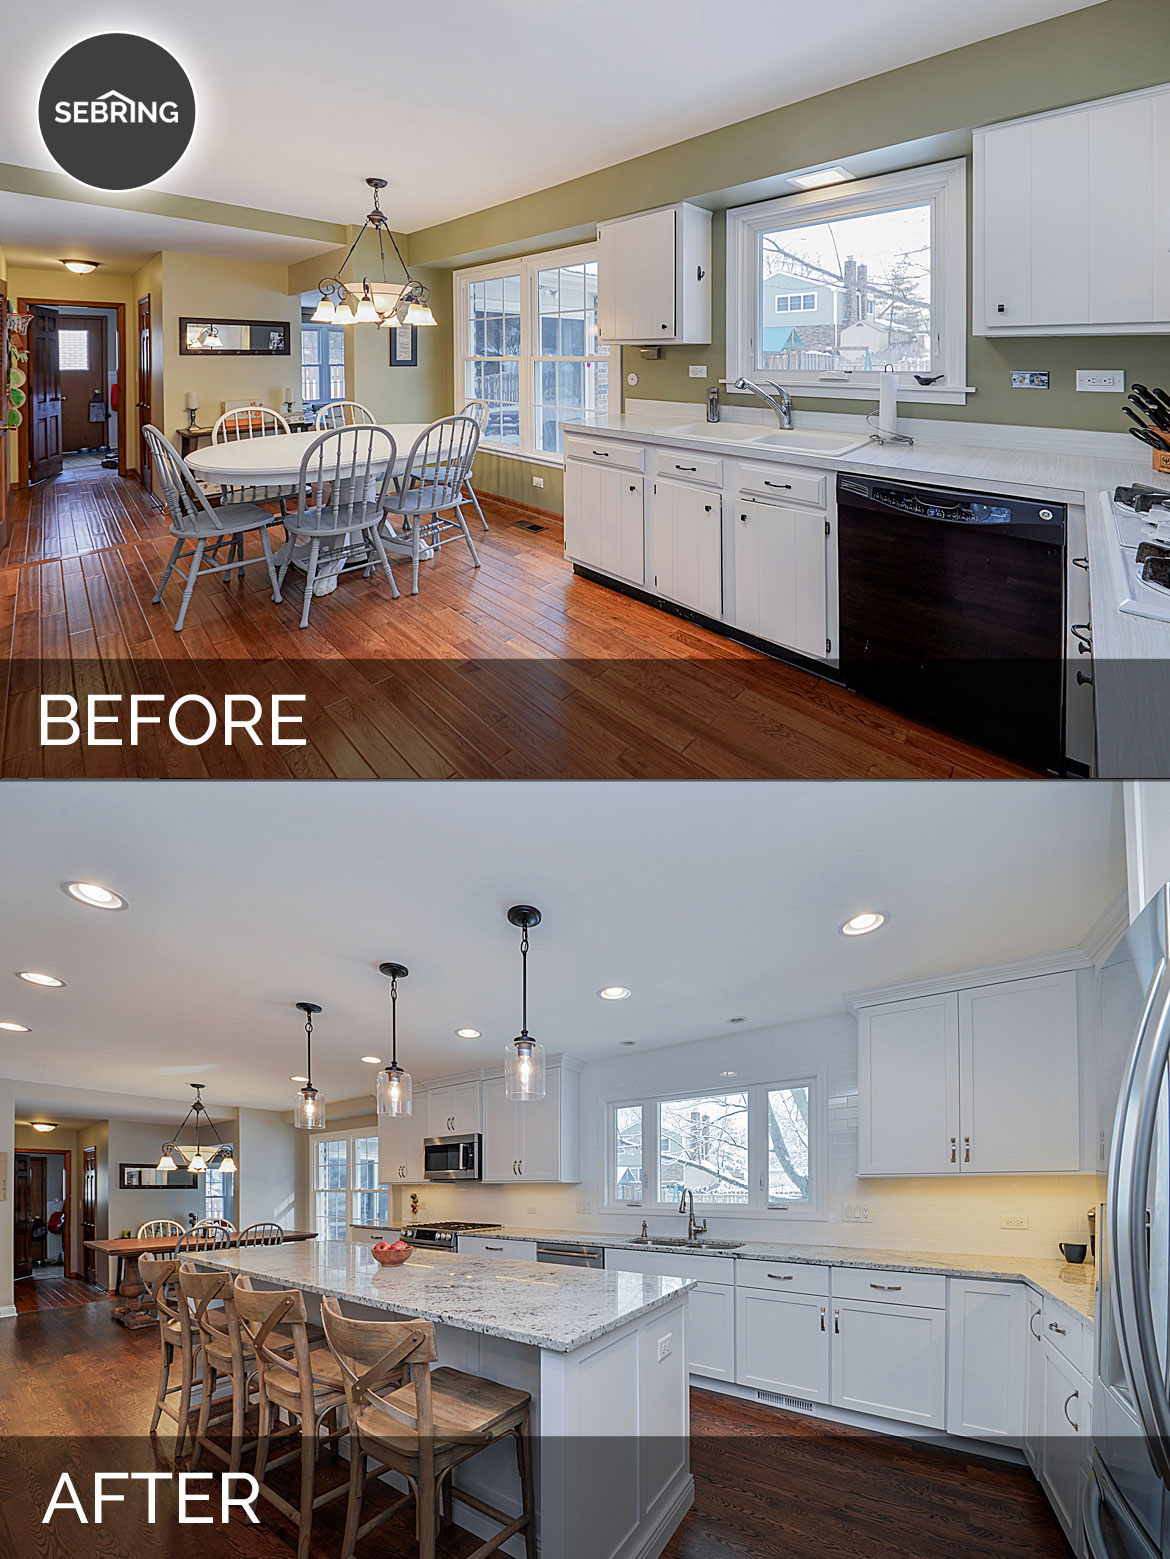 Before And After Diy Kitchen Renovation: Ryan & Missy's Kitchen Before & After Pictures